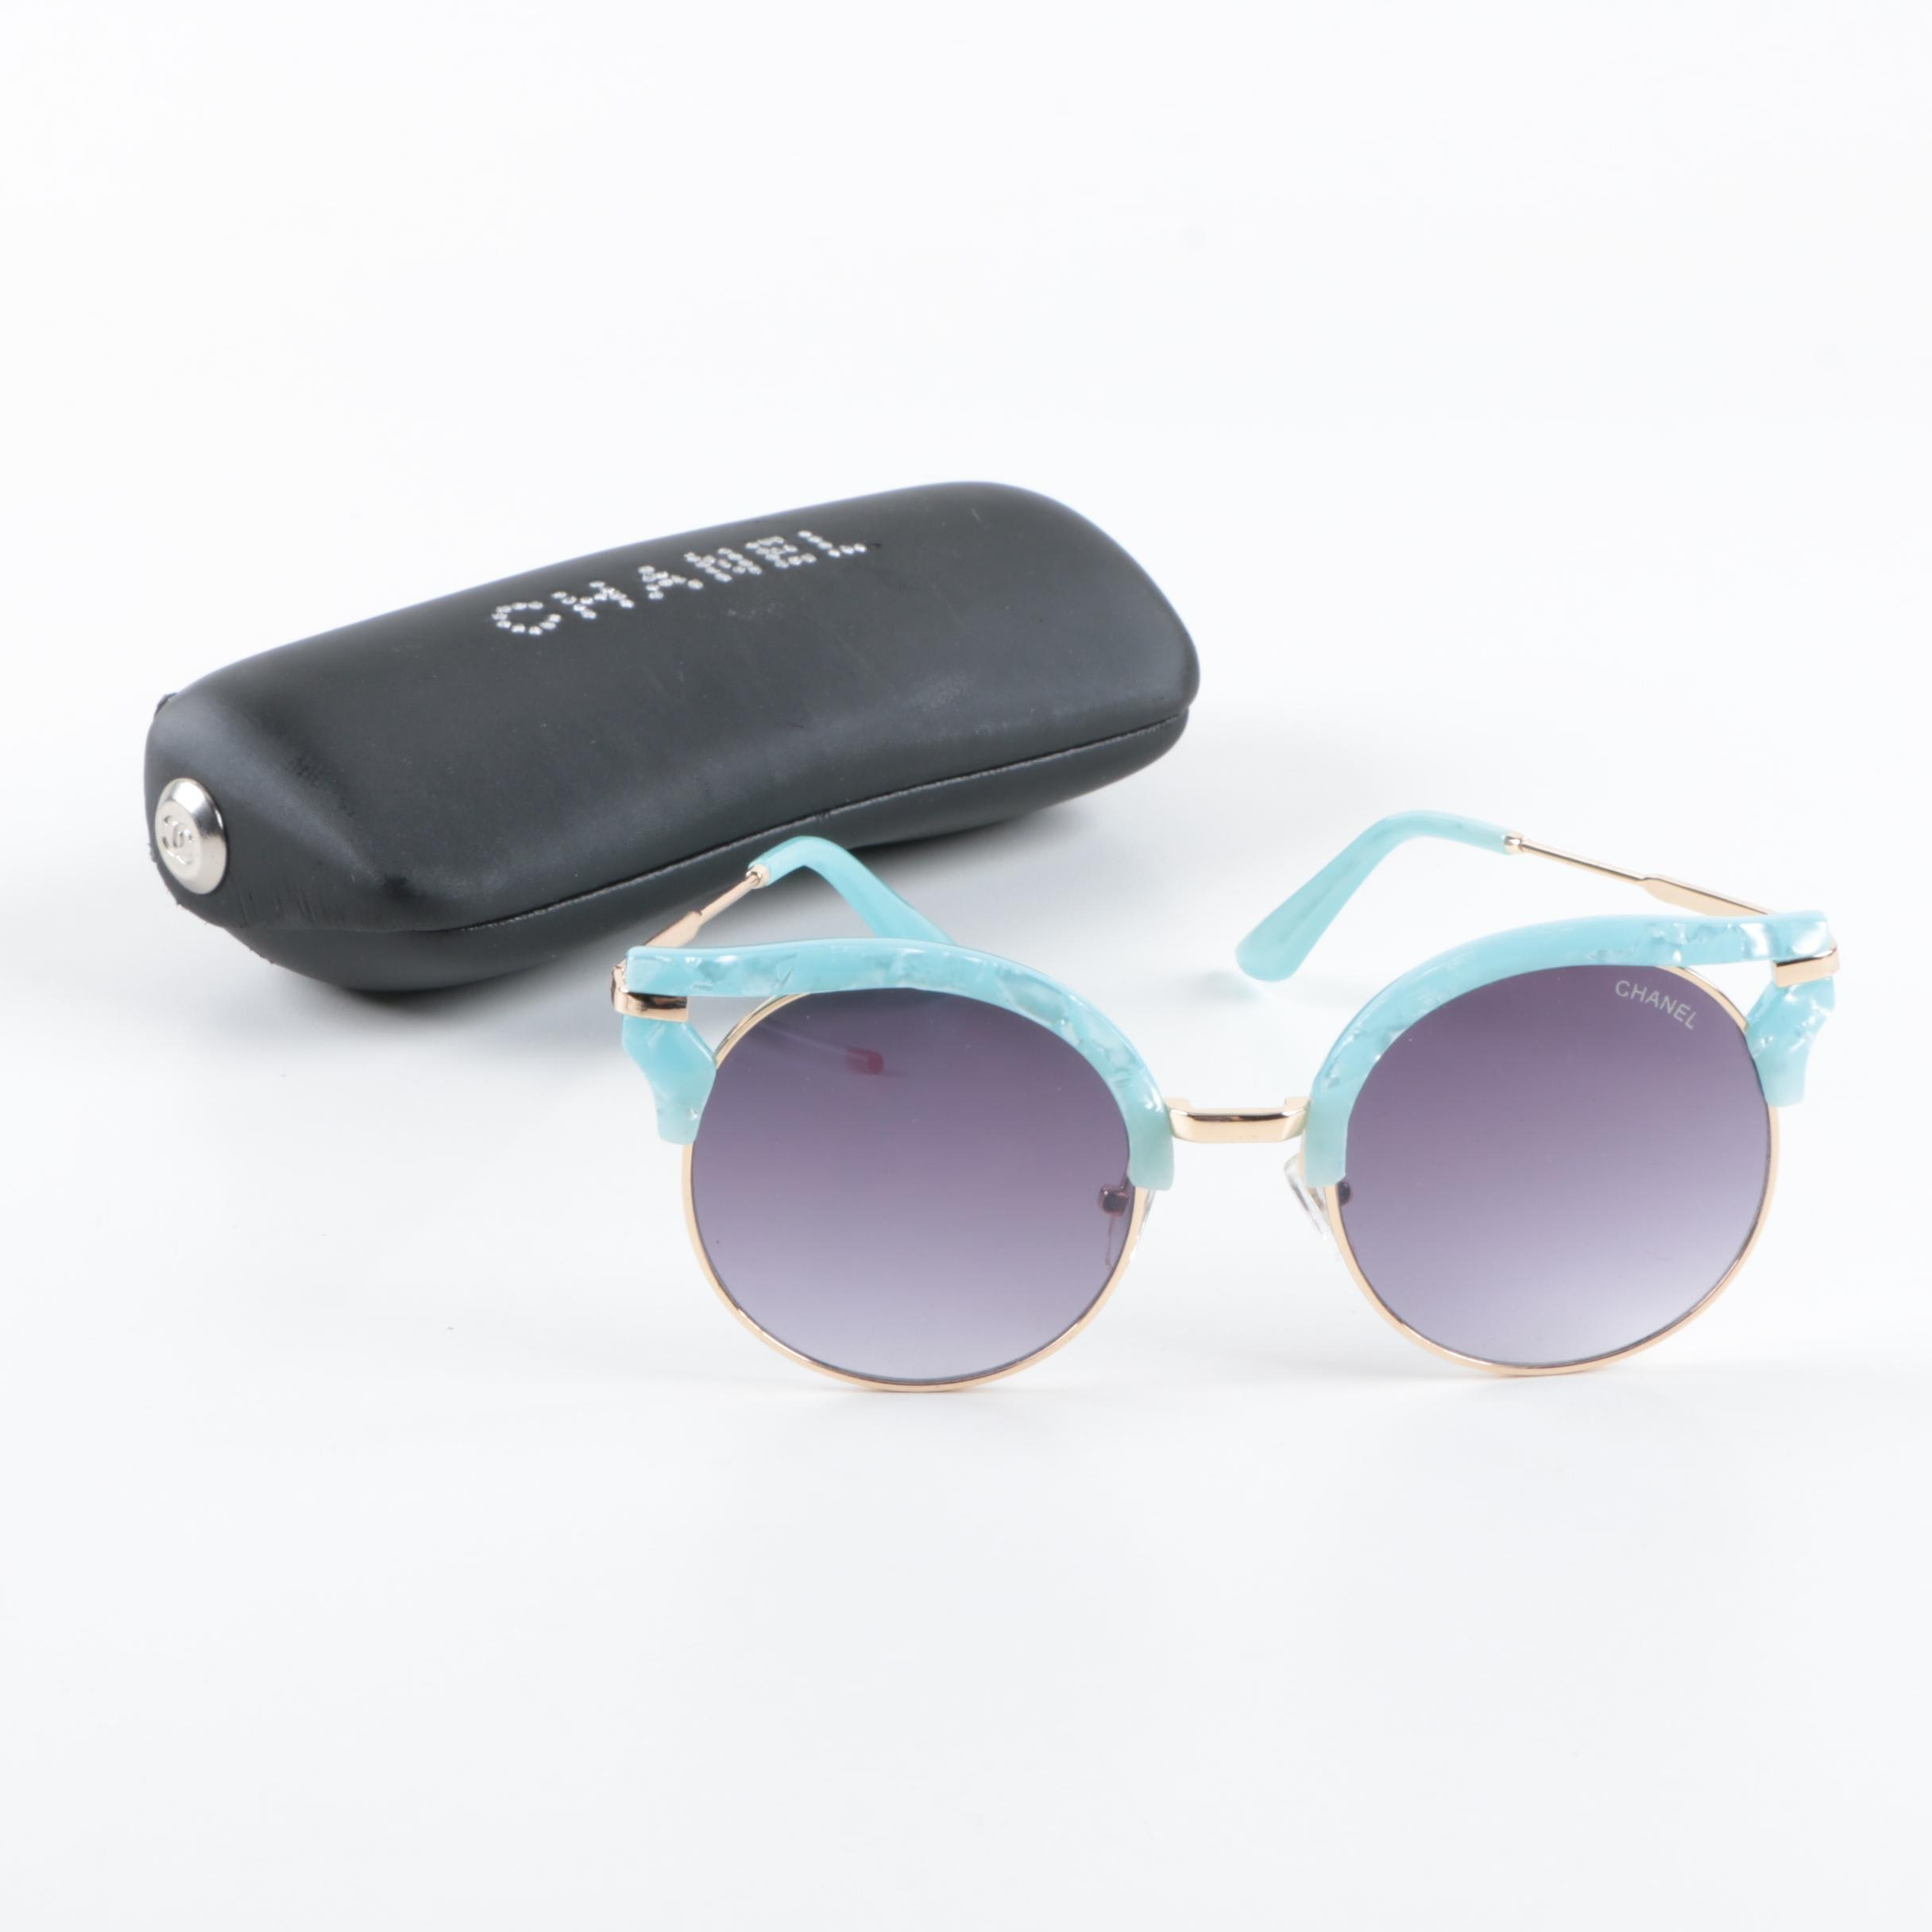 Chanel Round Cat Eye Sunglasses with Case